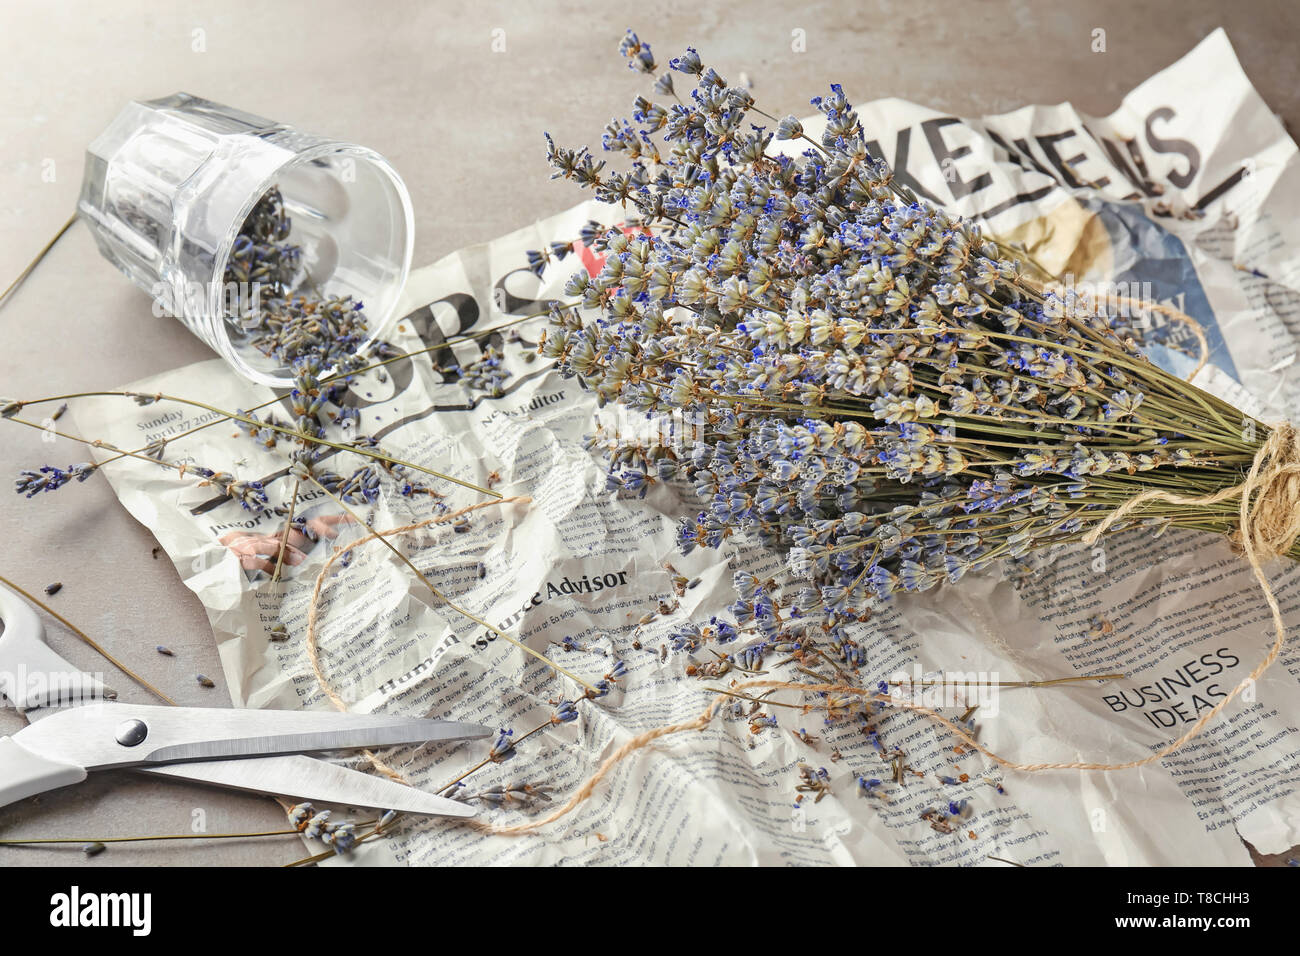 Bunch of beautiful blooming lavender flowers on crumpled newspaper - Stock Image